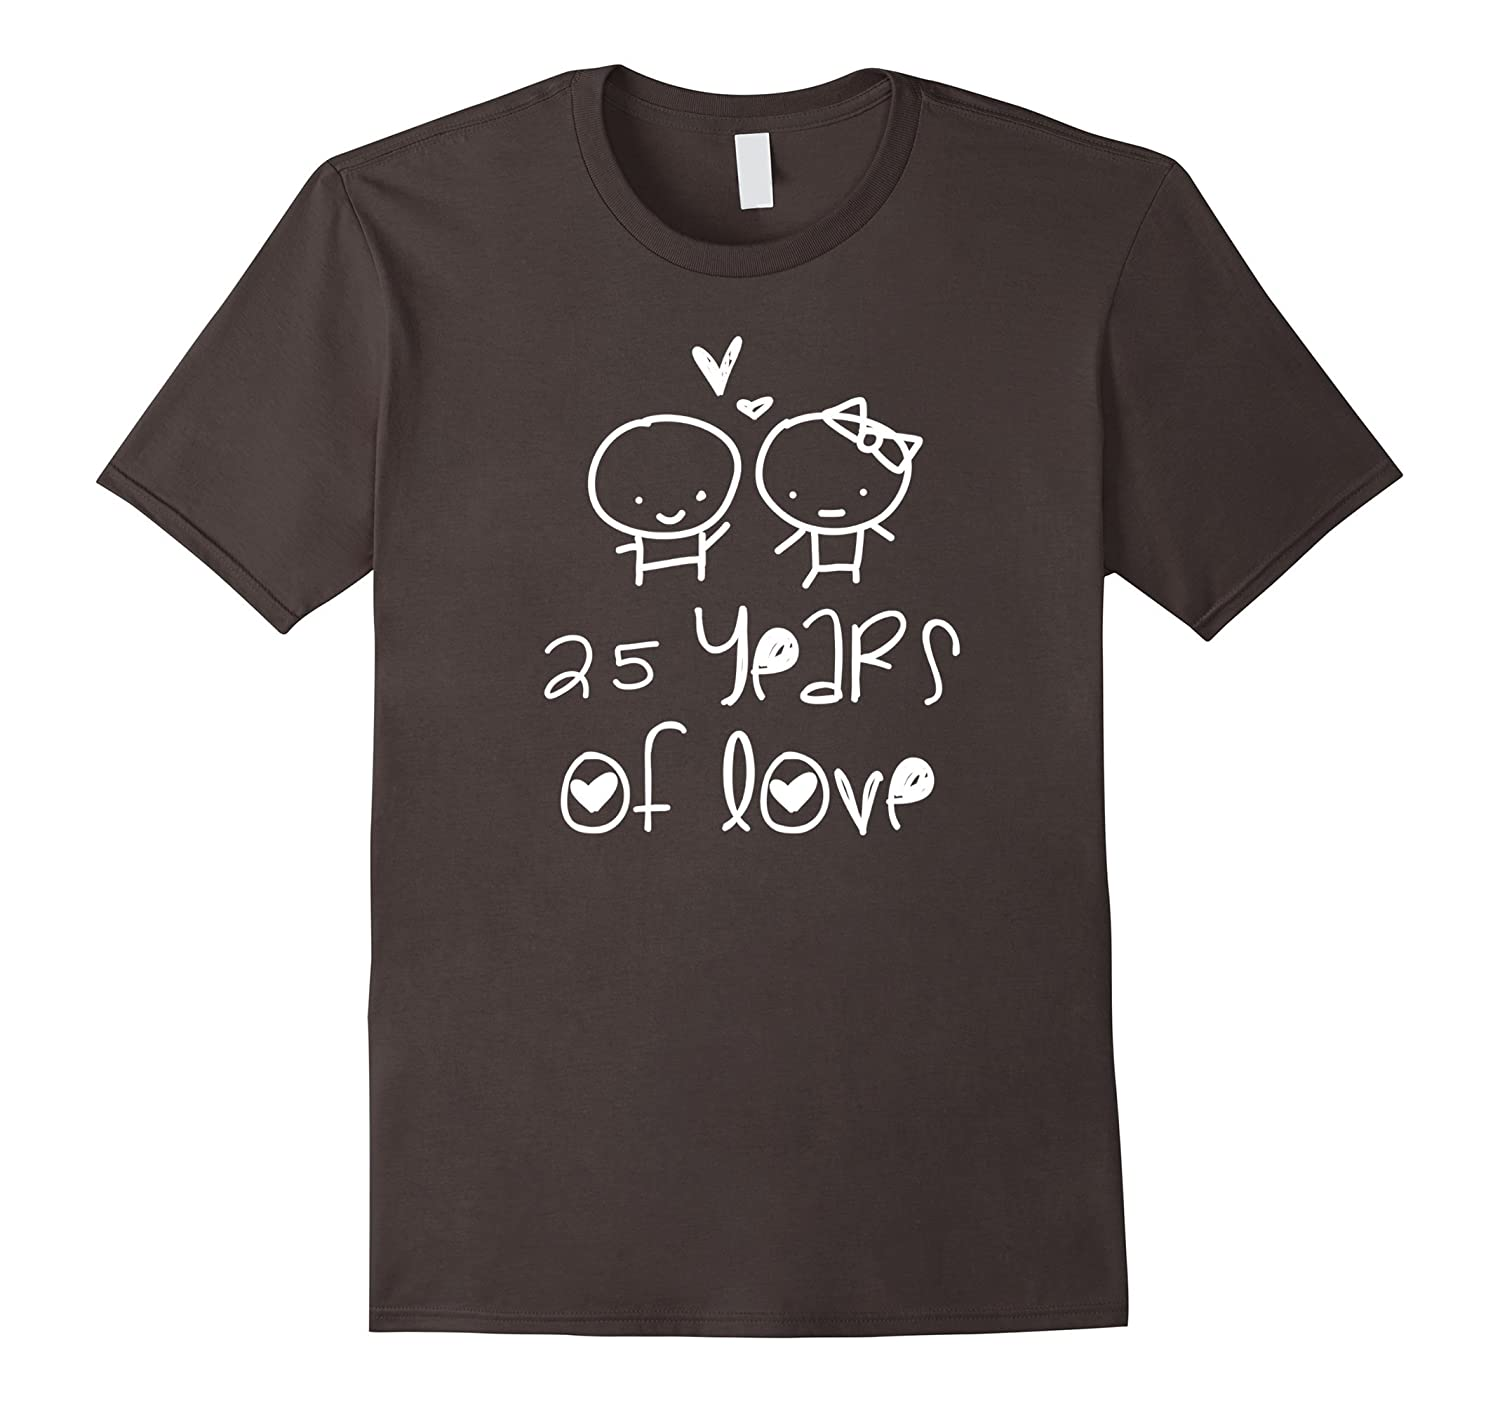 25 Years Of Love T-shirt. Silver Wedding Gifts Cute Graphic-Rose